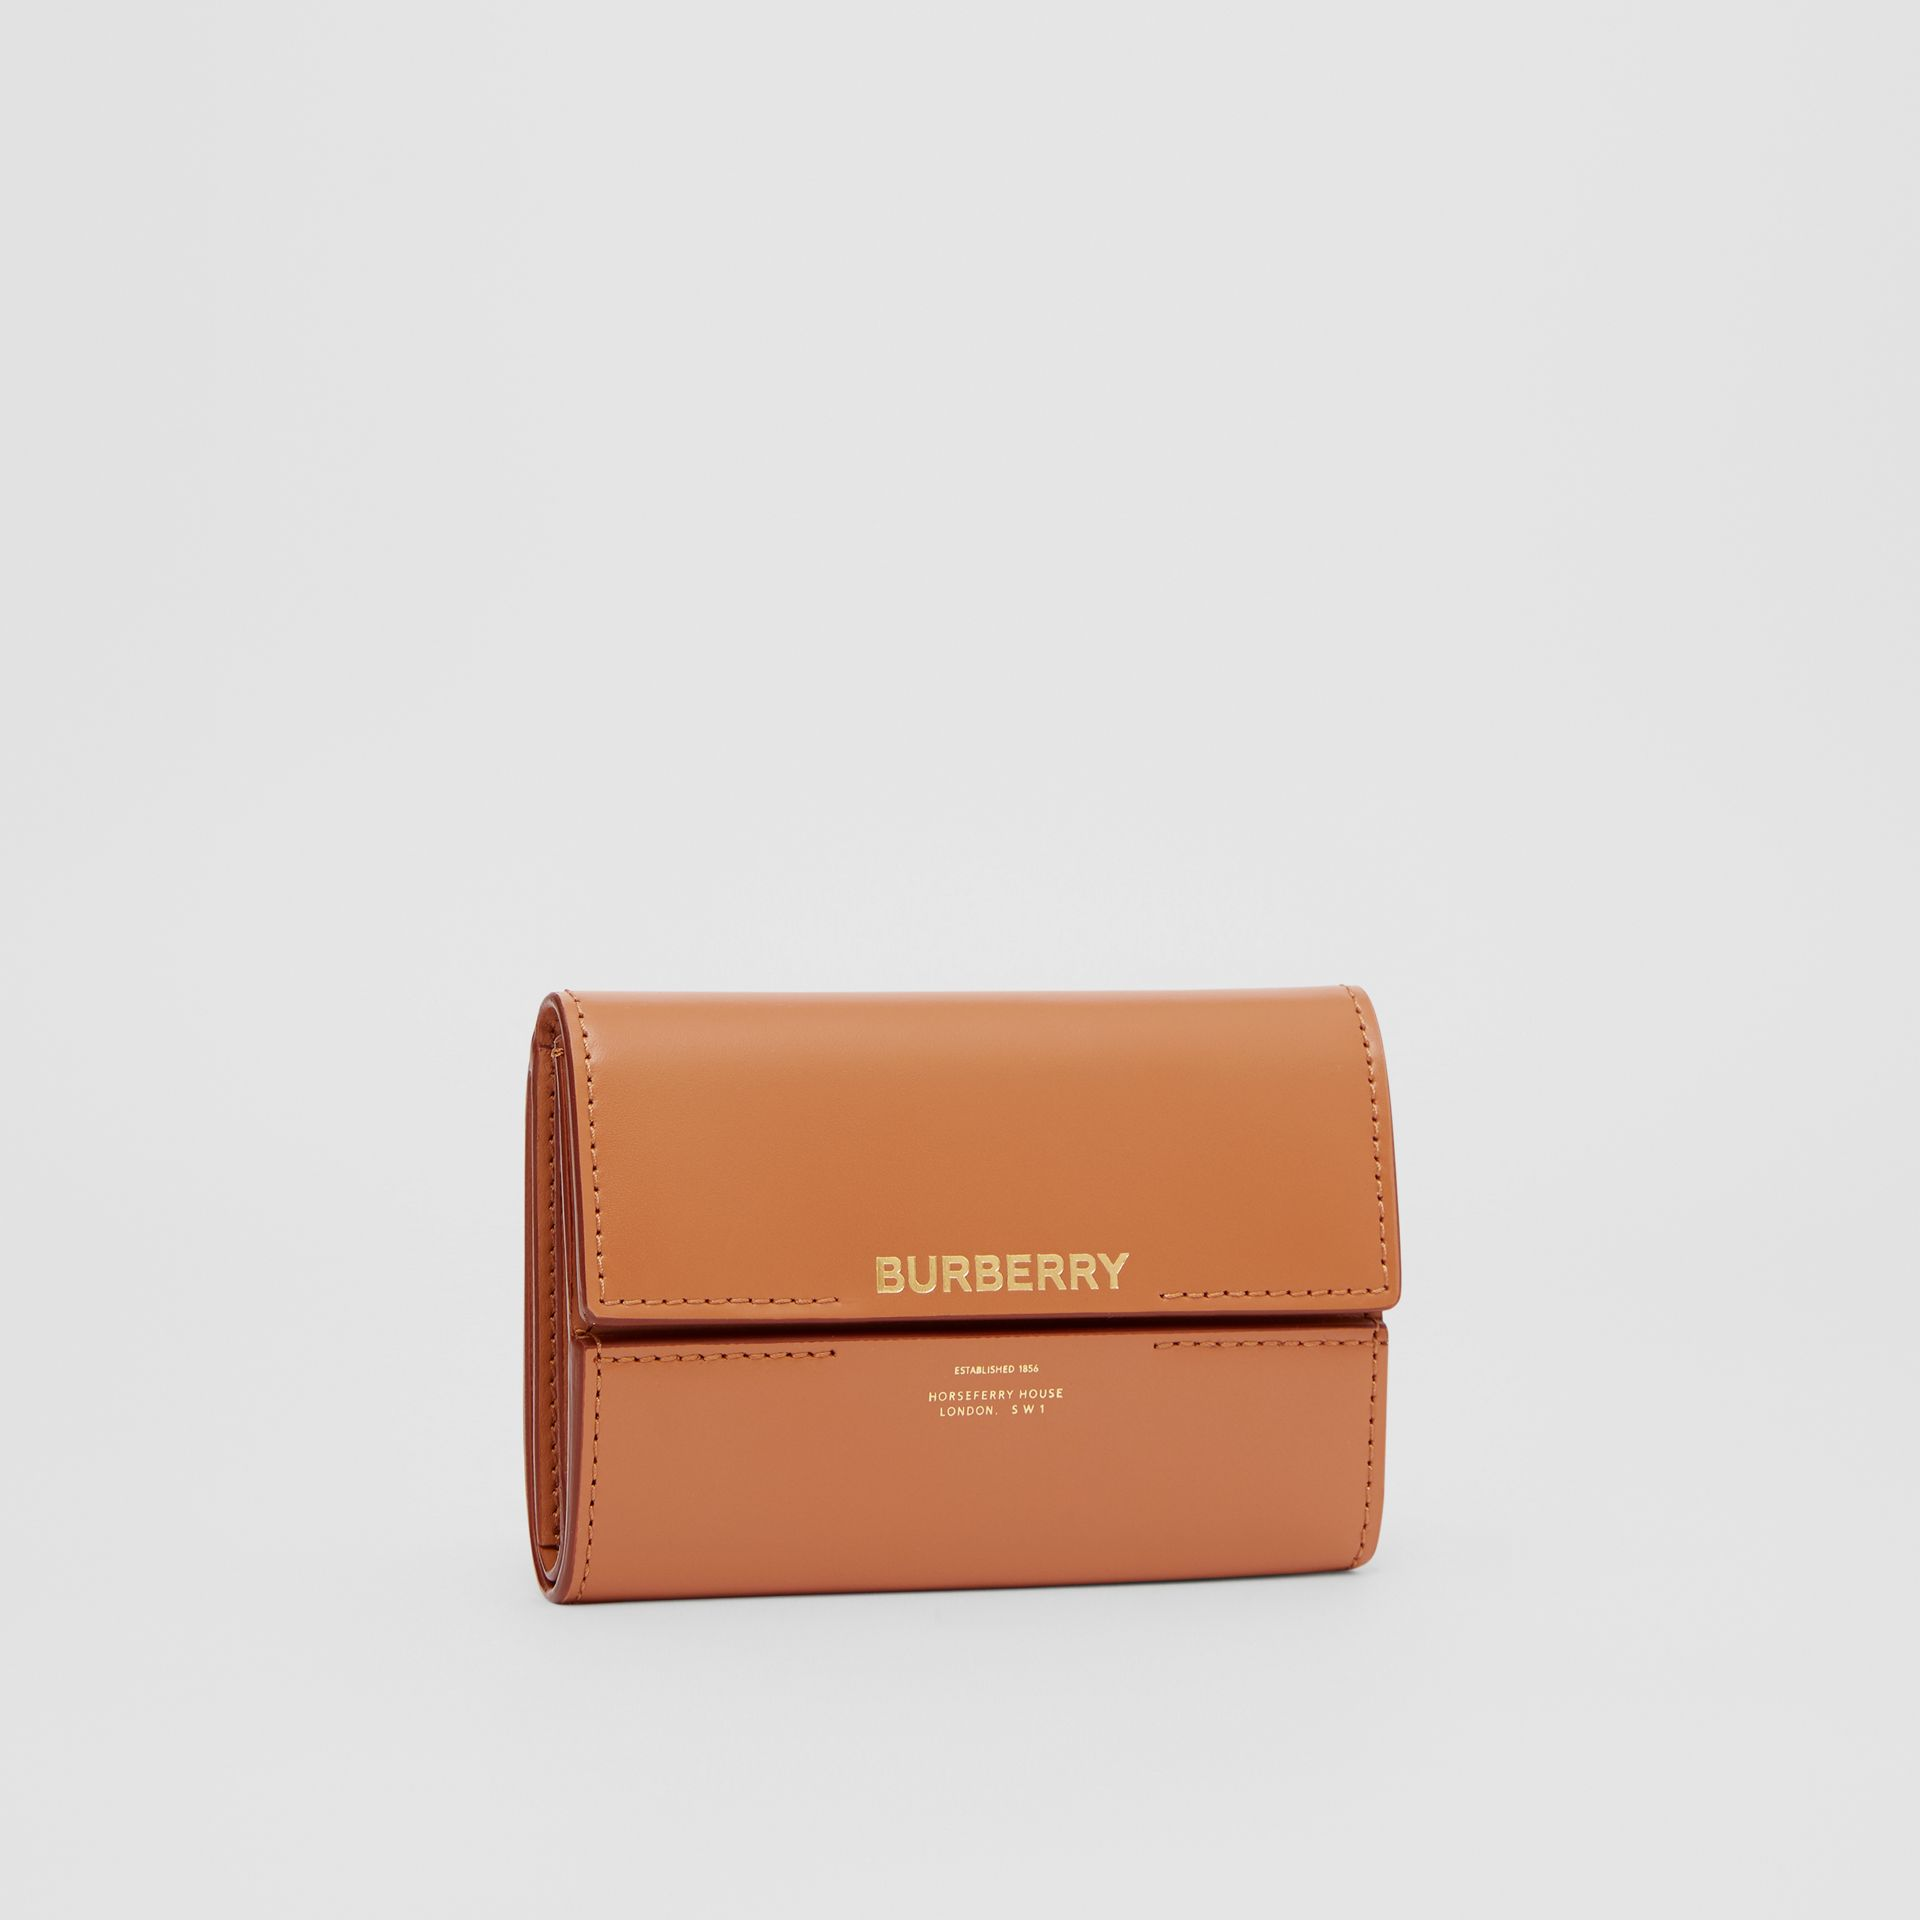 Horseferry Print Leather Folding Wallet in Nutmeg - Women | Burberry - gallery image 4